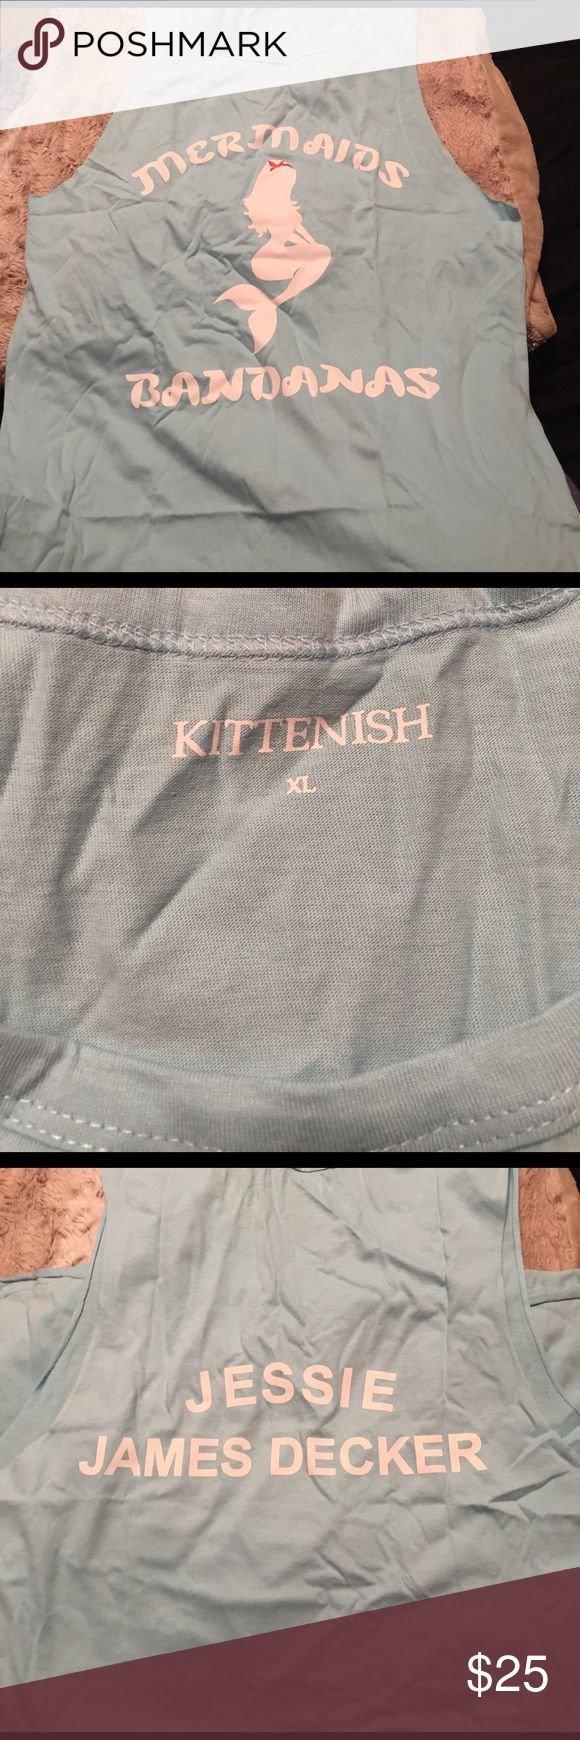 NWOT KITTENISH Mermaids and Bandanas tank Jessie James Decker NEW WORN*** Kittenish tank. It is wrinkled because I literally just took it out of the package. Rare - size XL. Super cute. Tops Muscle Tees